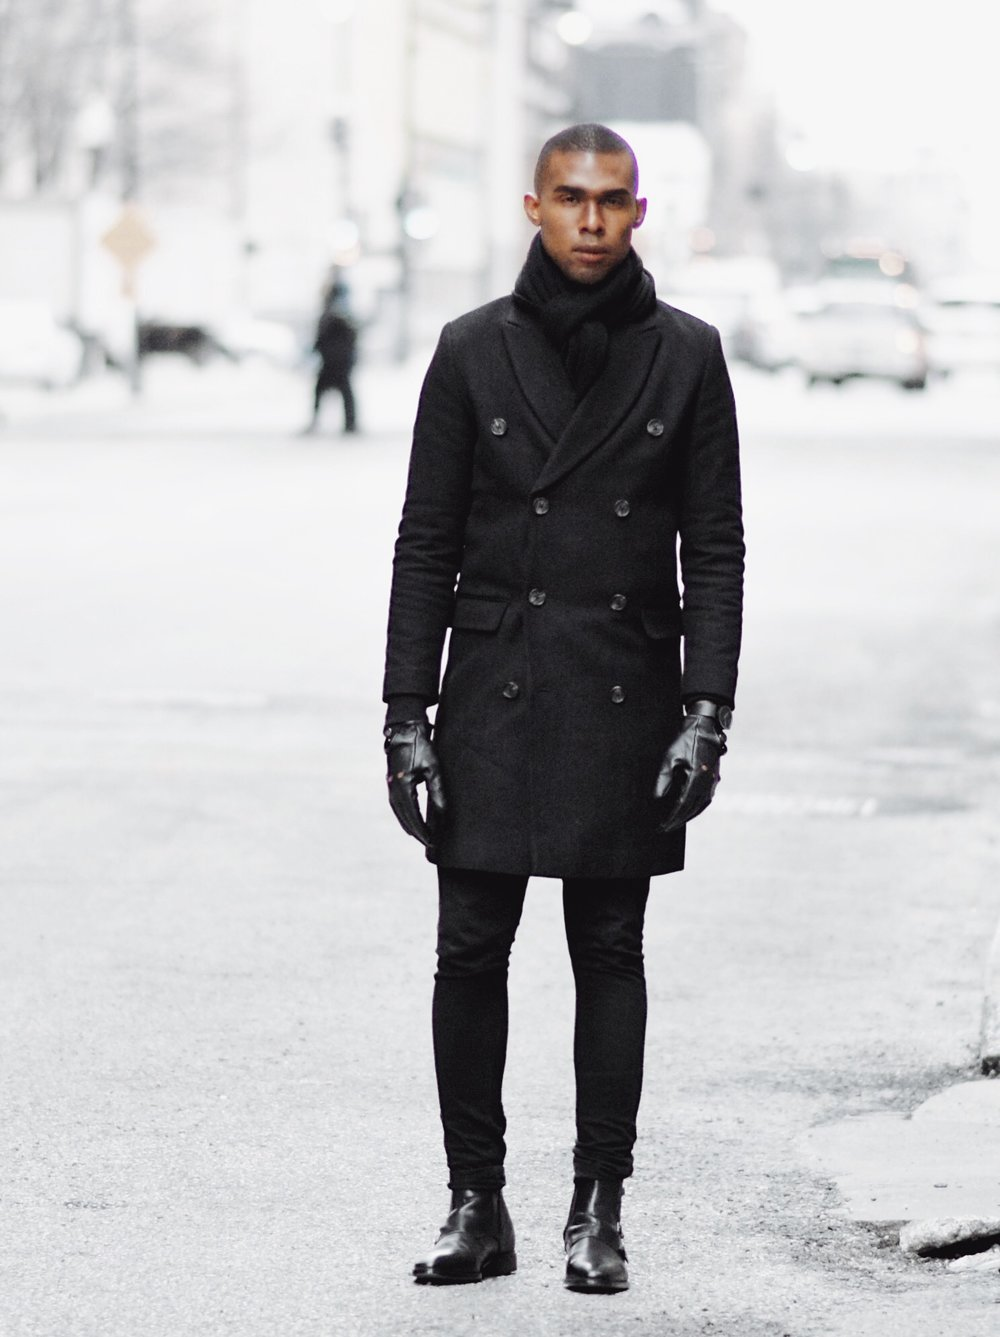 The-Look-Principle-Black-Overcoat-In-The-Winter.jpg